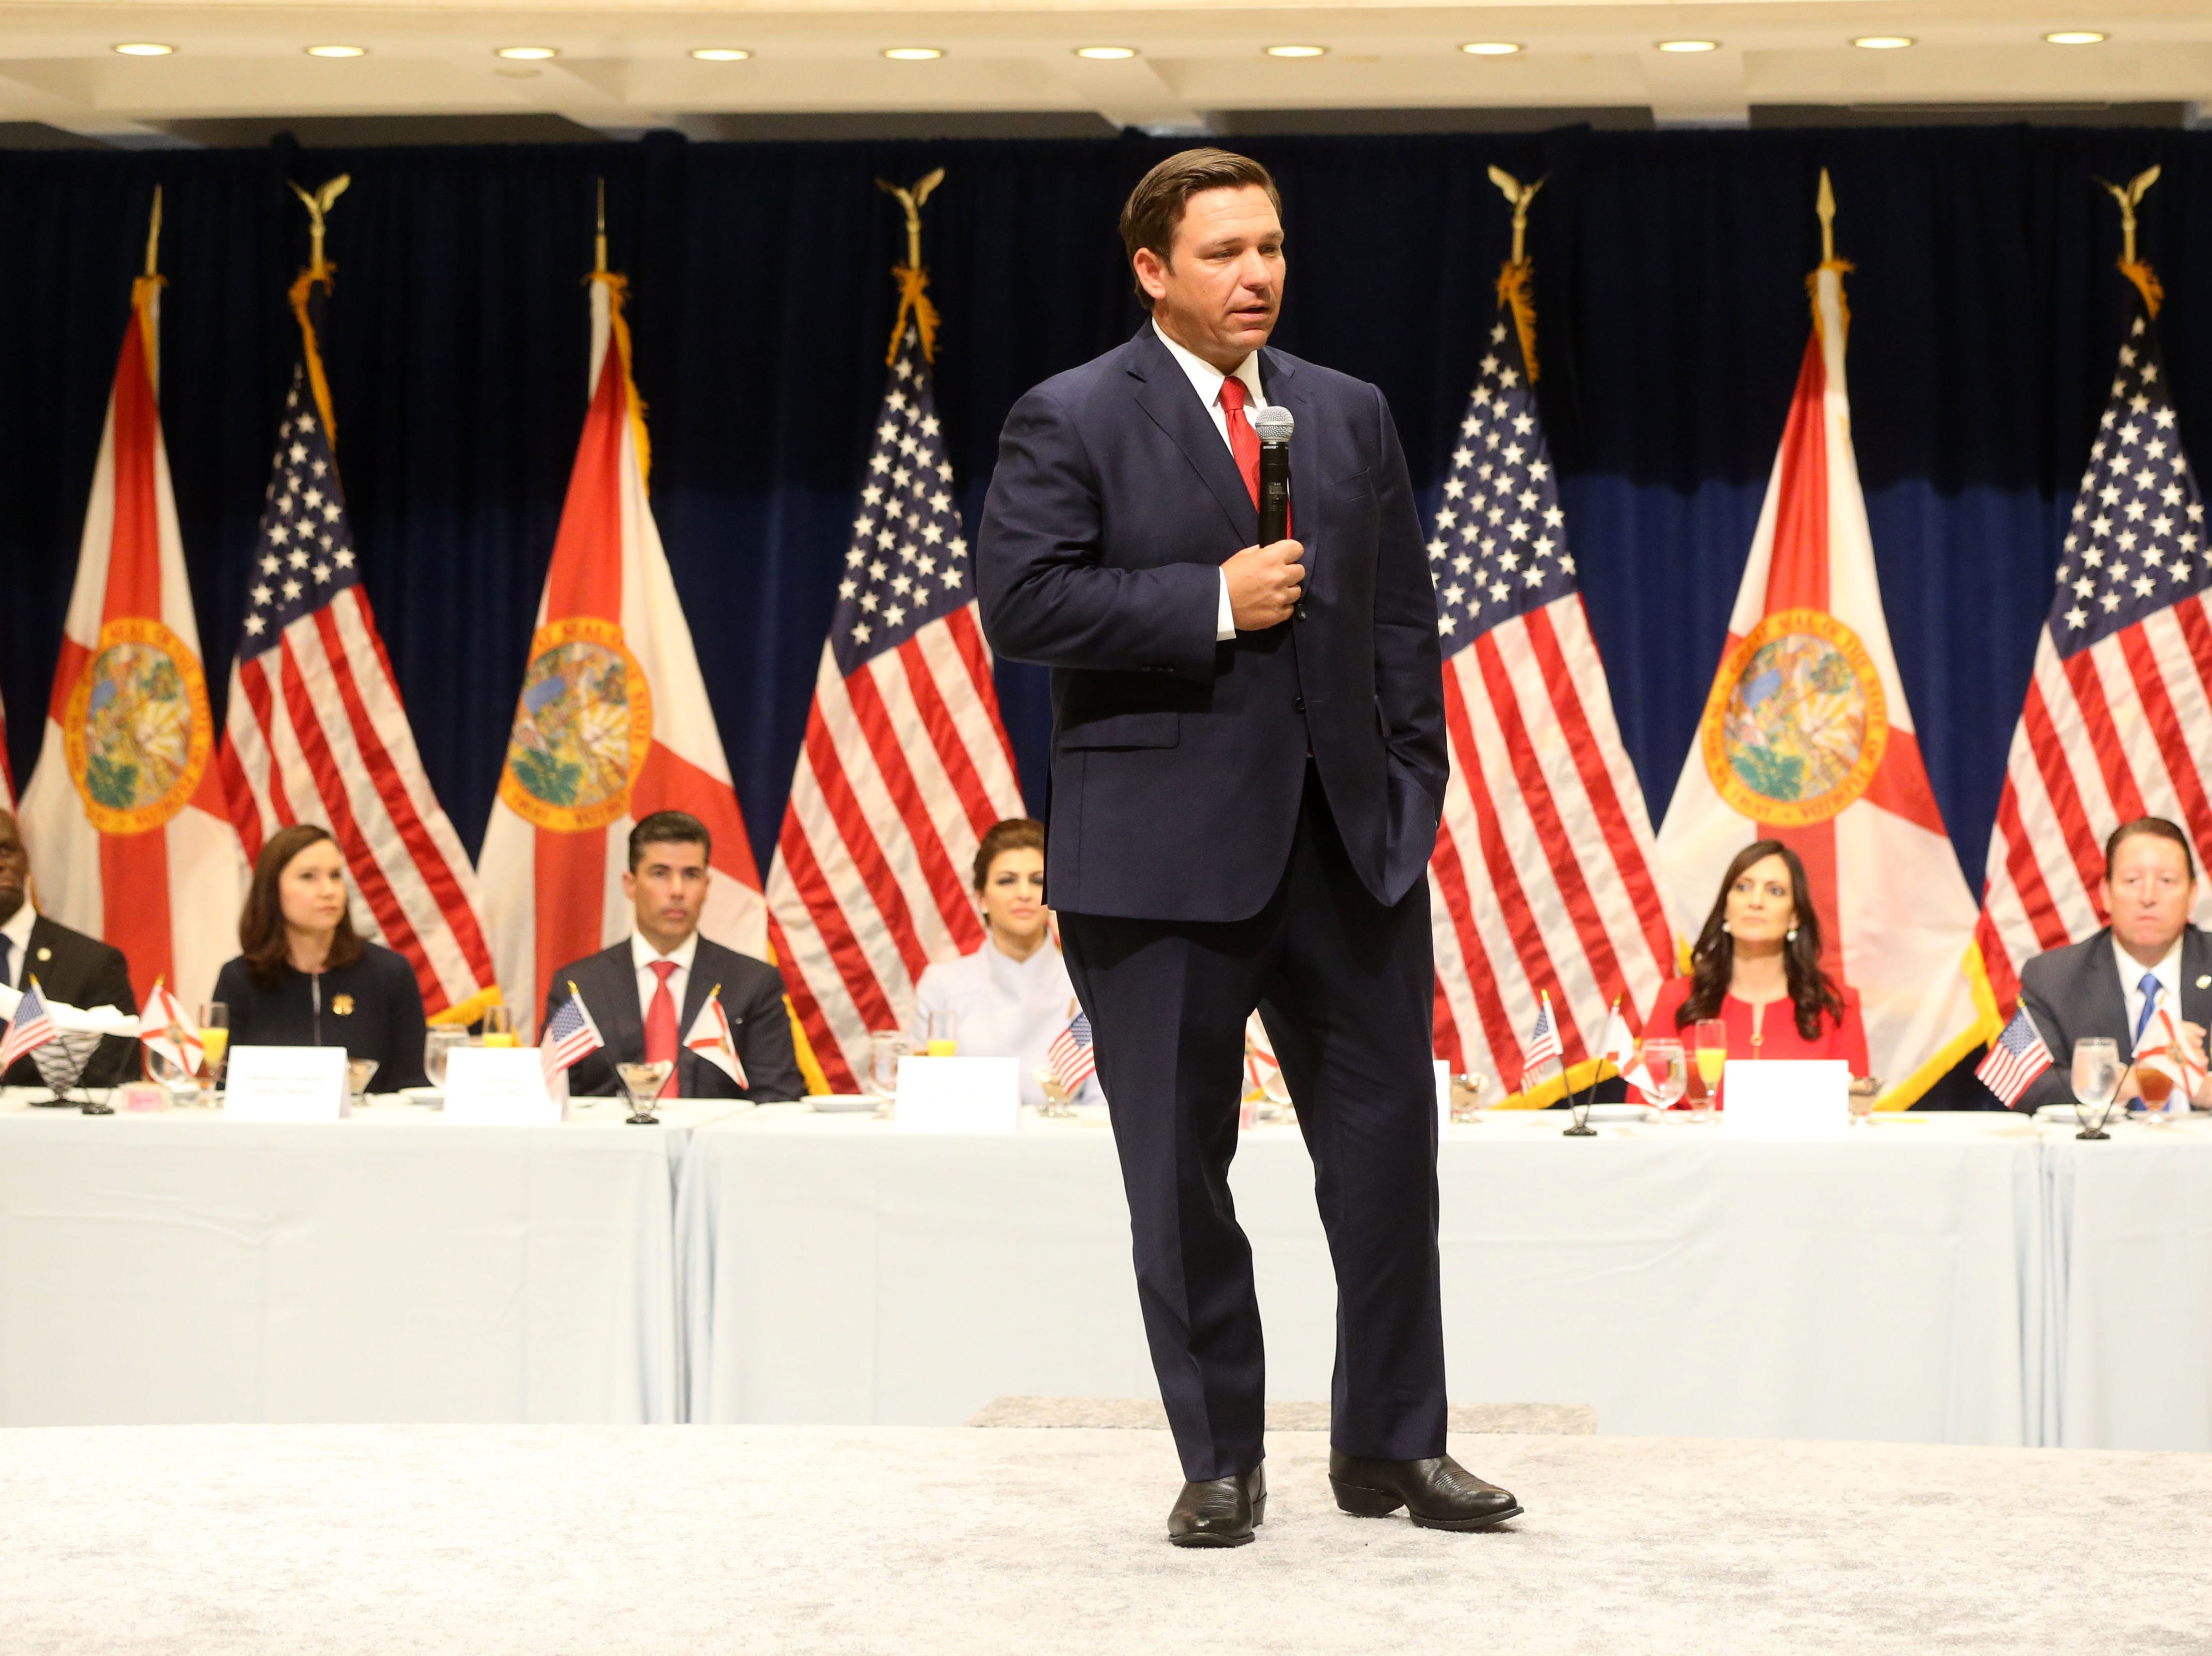 For the first time in Inaugural history, Gov. Ron DeSantis addresses FloridaÕs Legislative leaders and Cabinet officials. DeSantis discusses his plans to work with our stateÕs elected leaders to achieve a Bold Vision for a Brighter Future, Tuesday, Jan. 8, 2019. Gov. Ron DeSantis speaks to a room of Florida politicians at the luncheon.